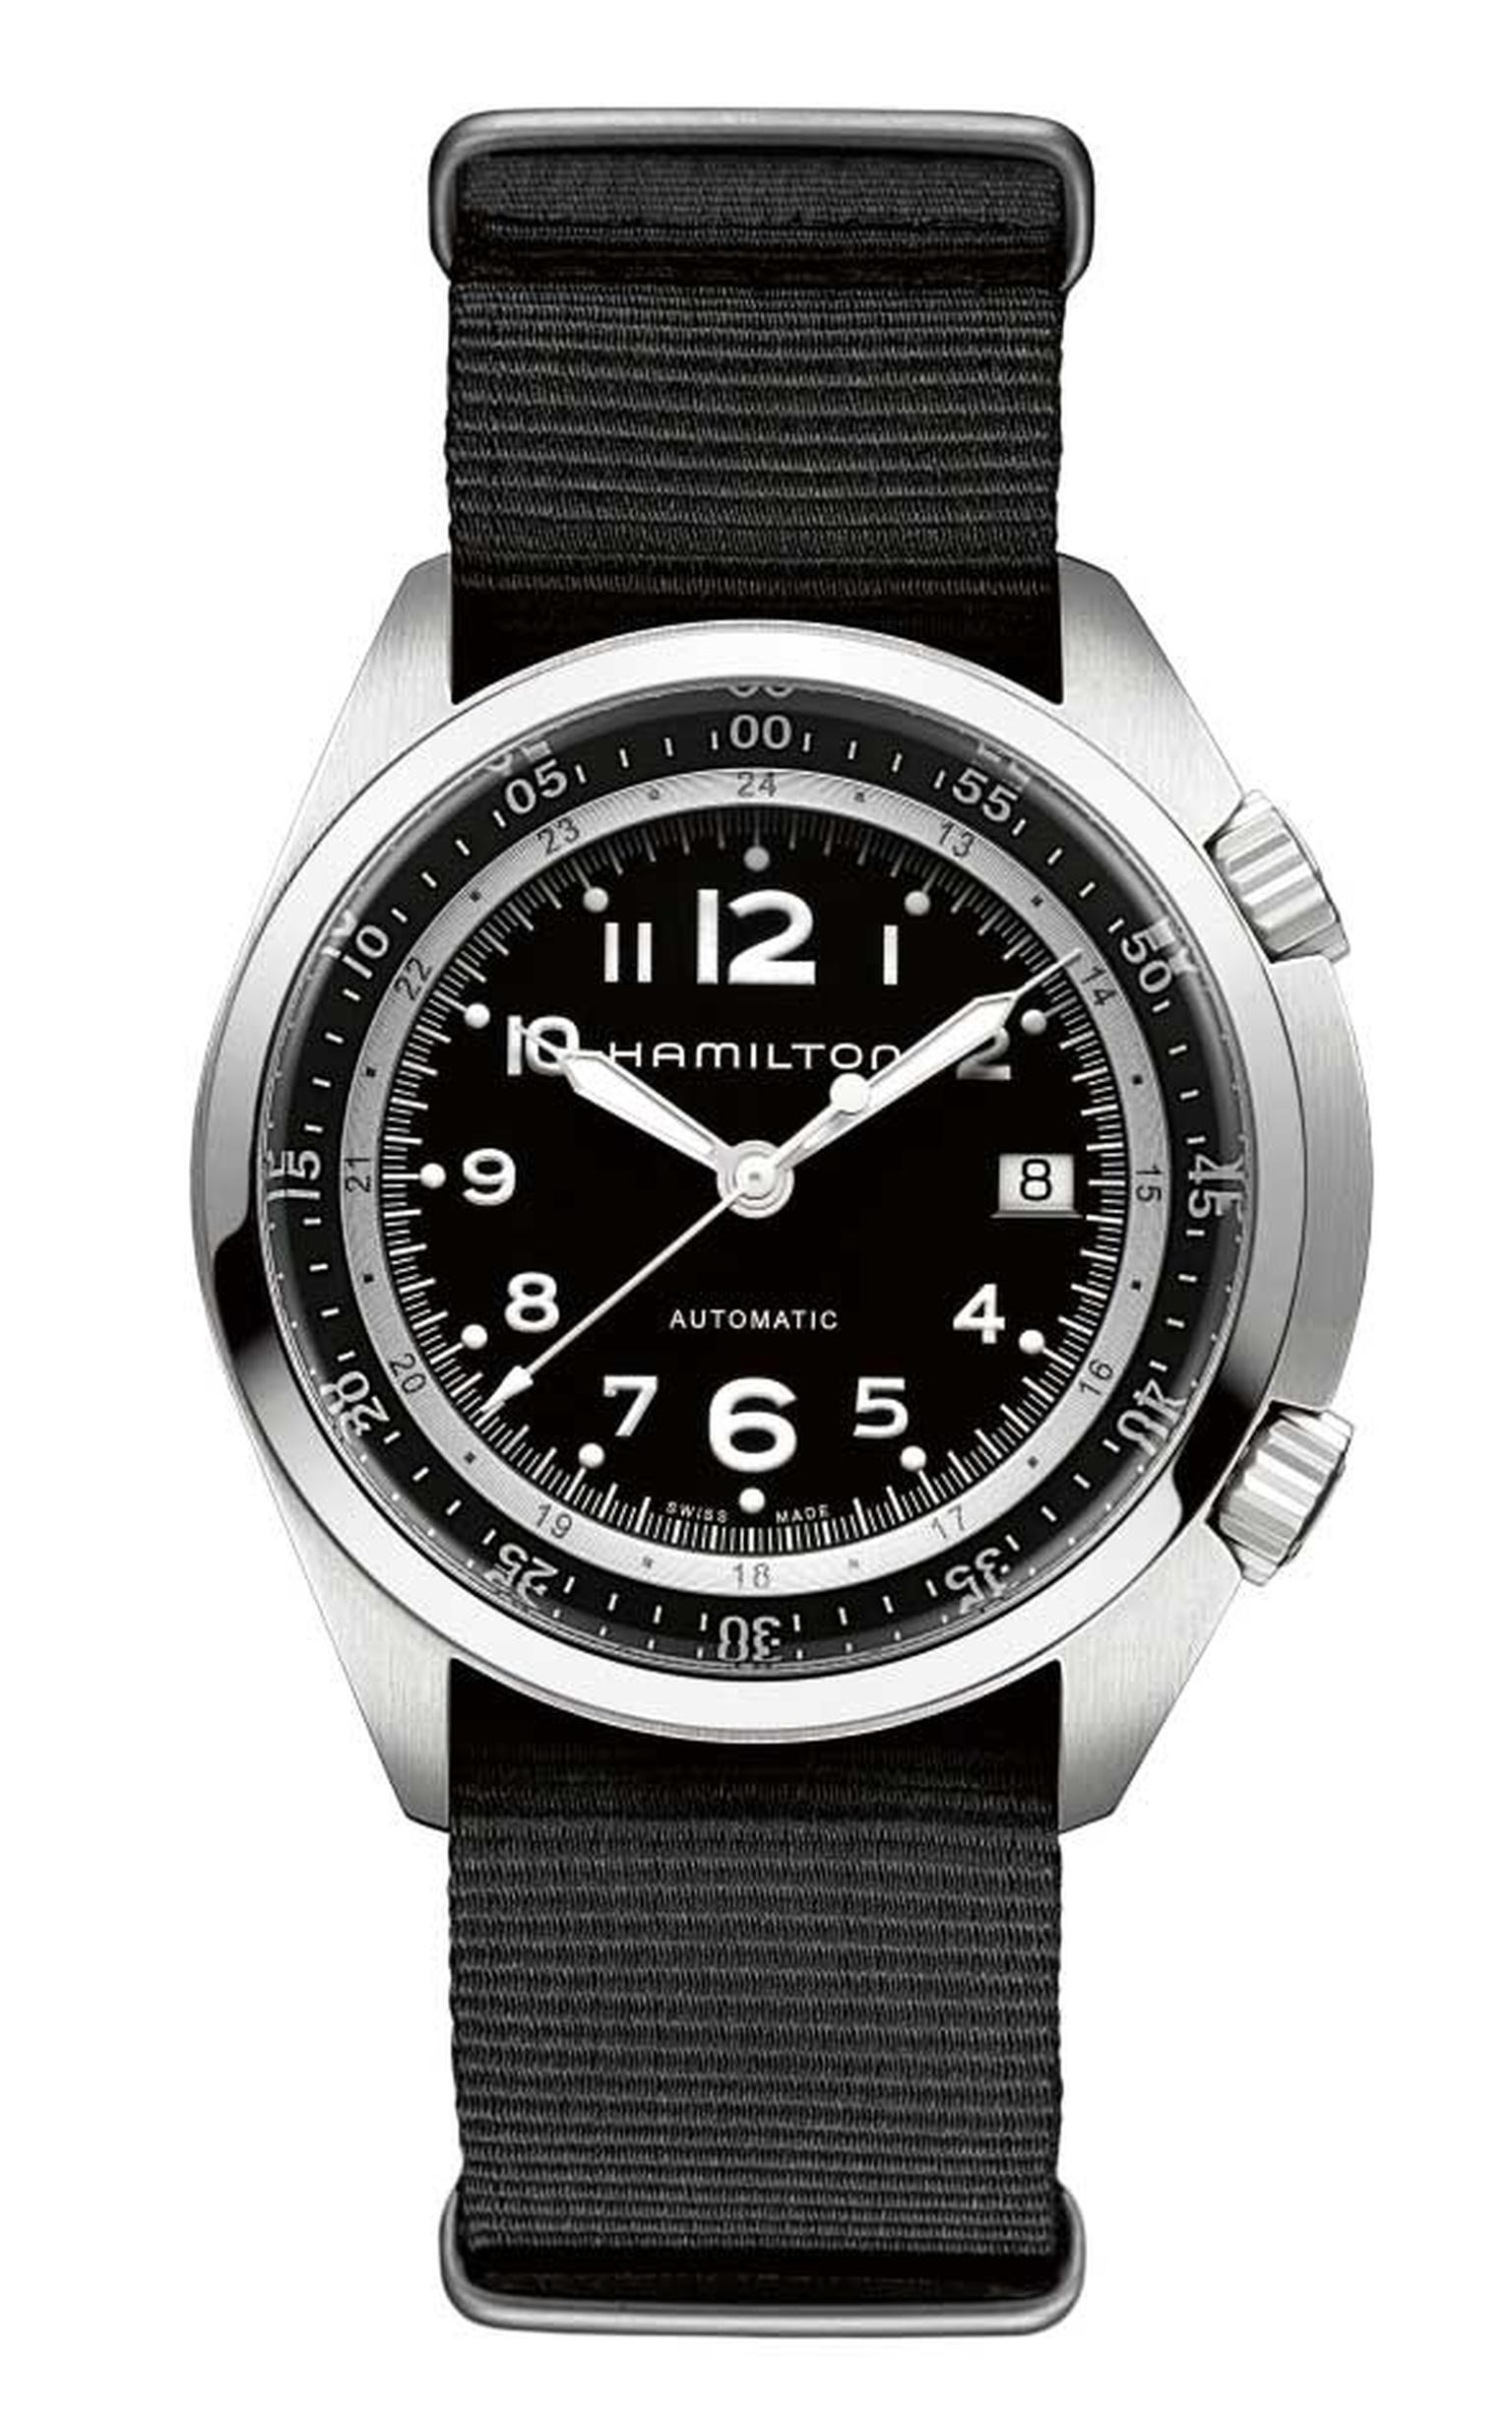 Baselworld review: the top five pilots watches for 2014